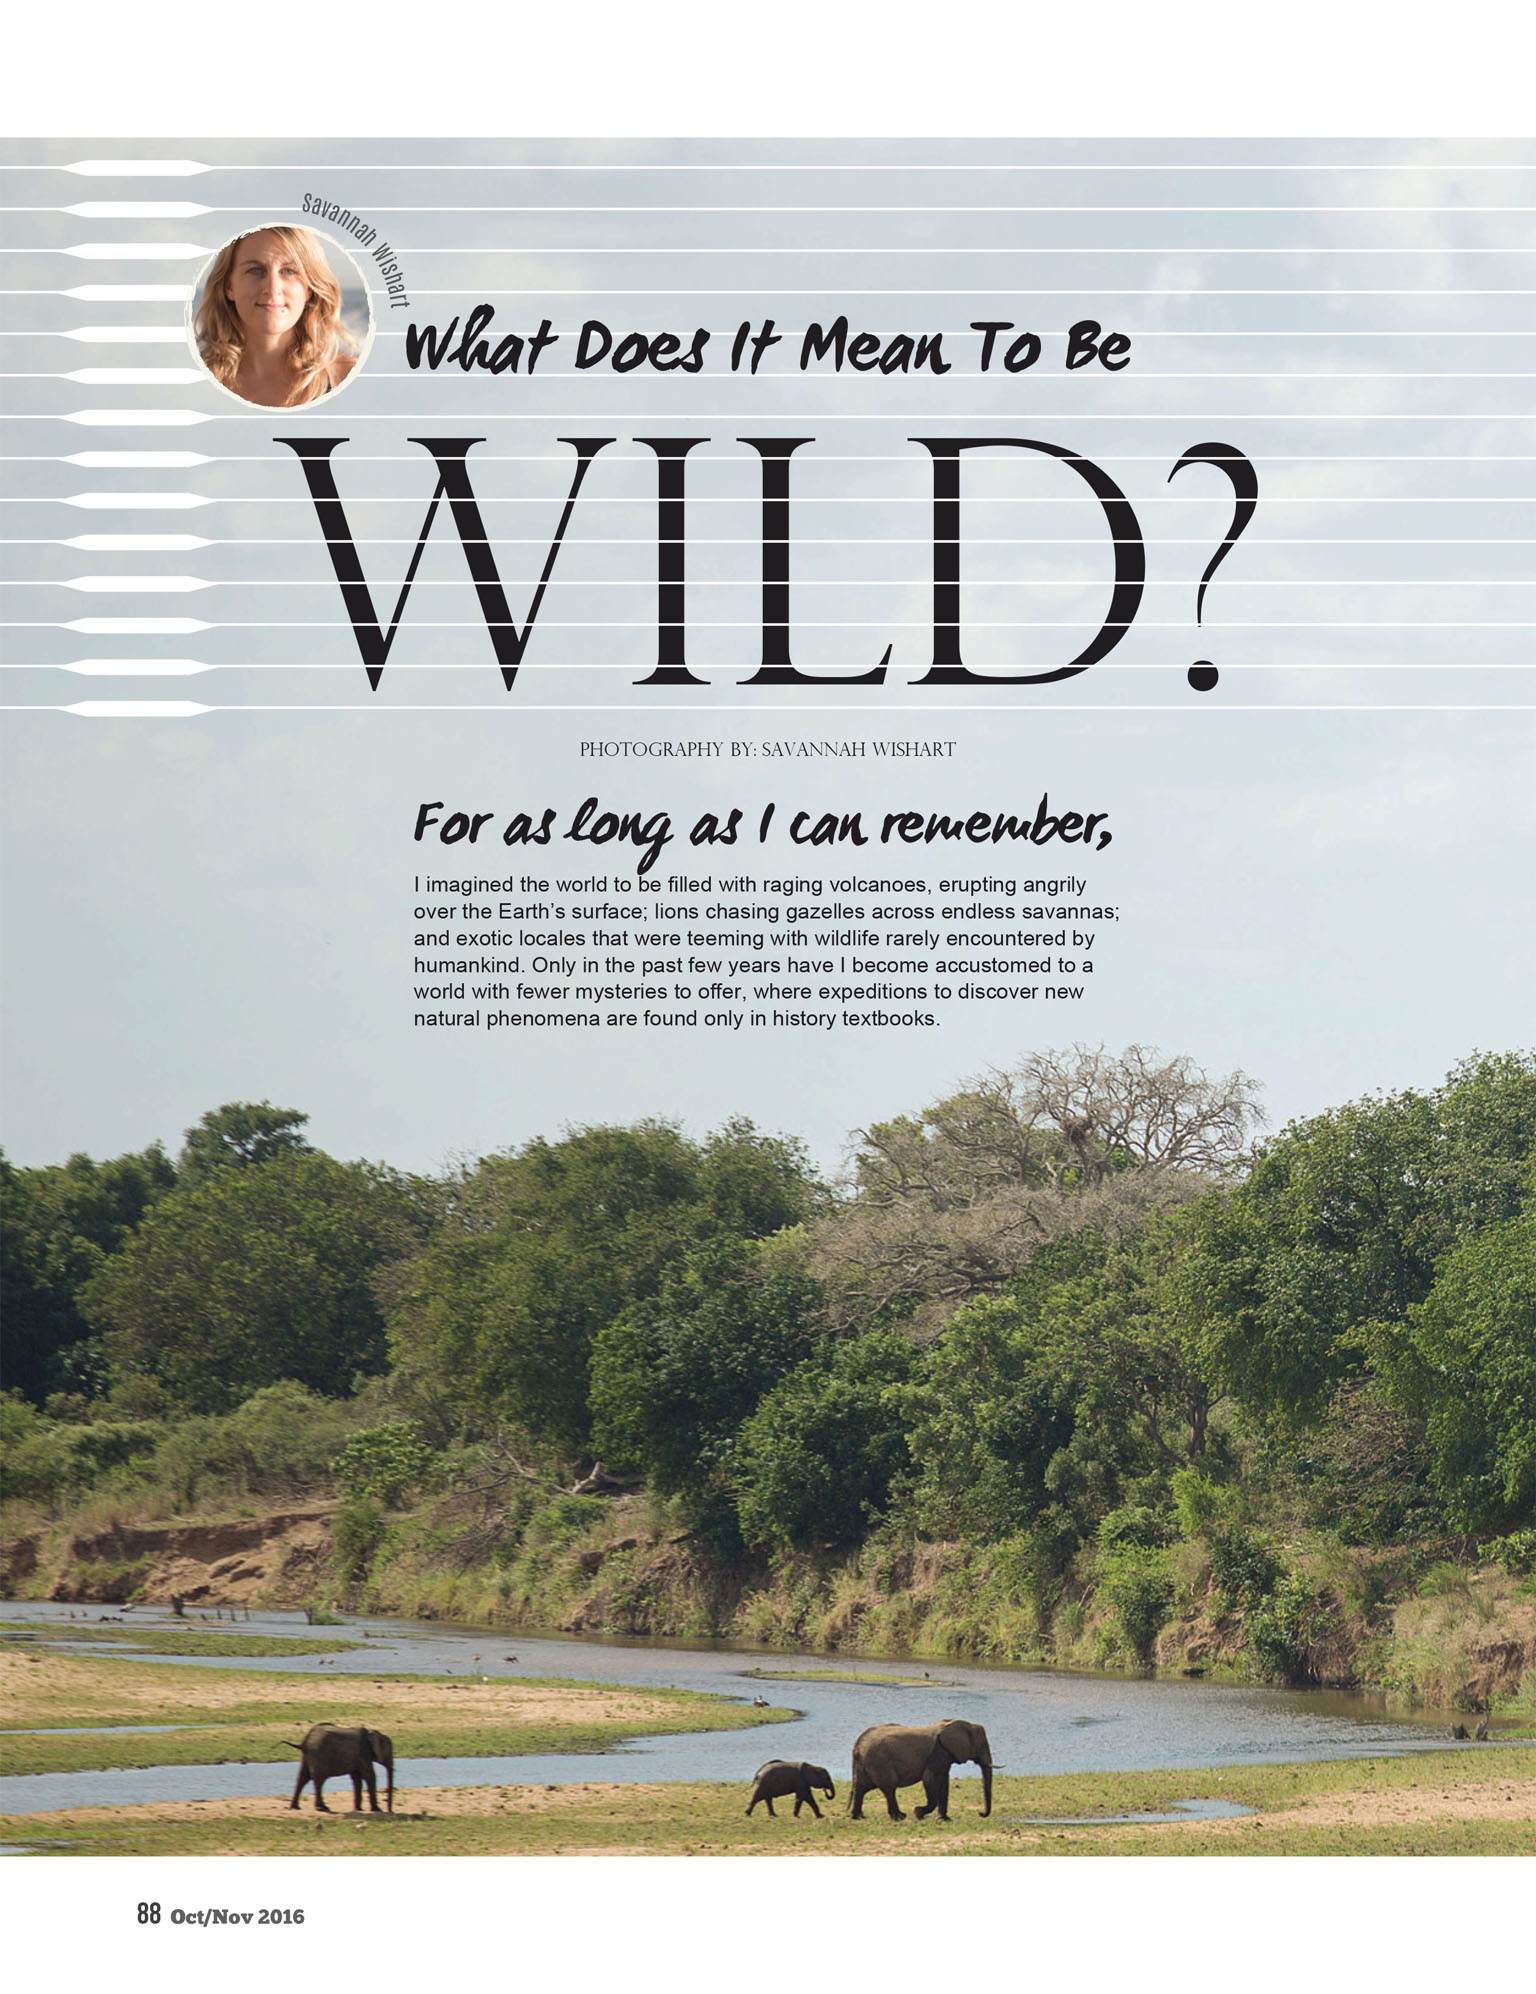 What does it mean to be wild? Article for Paleo Magazine on Kruger National Park